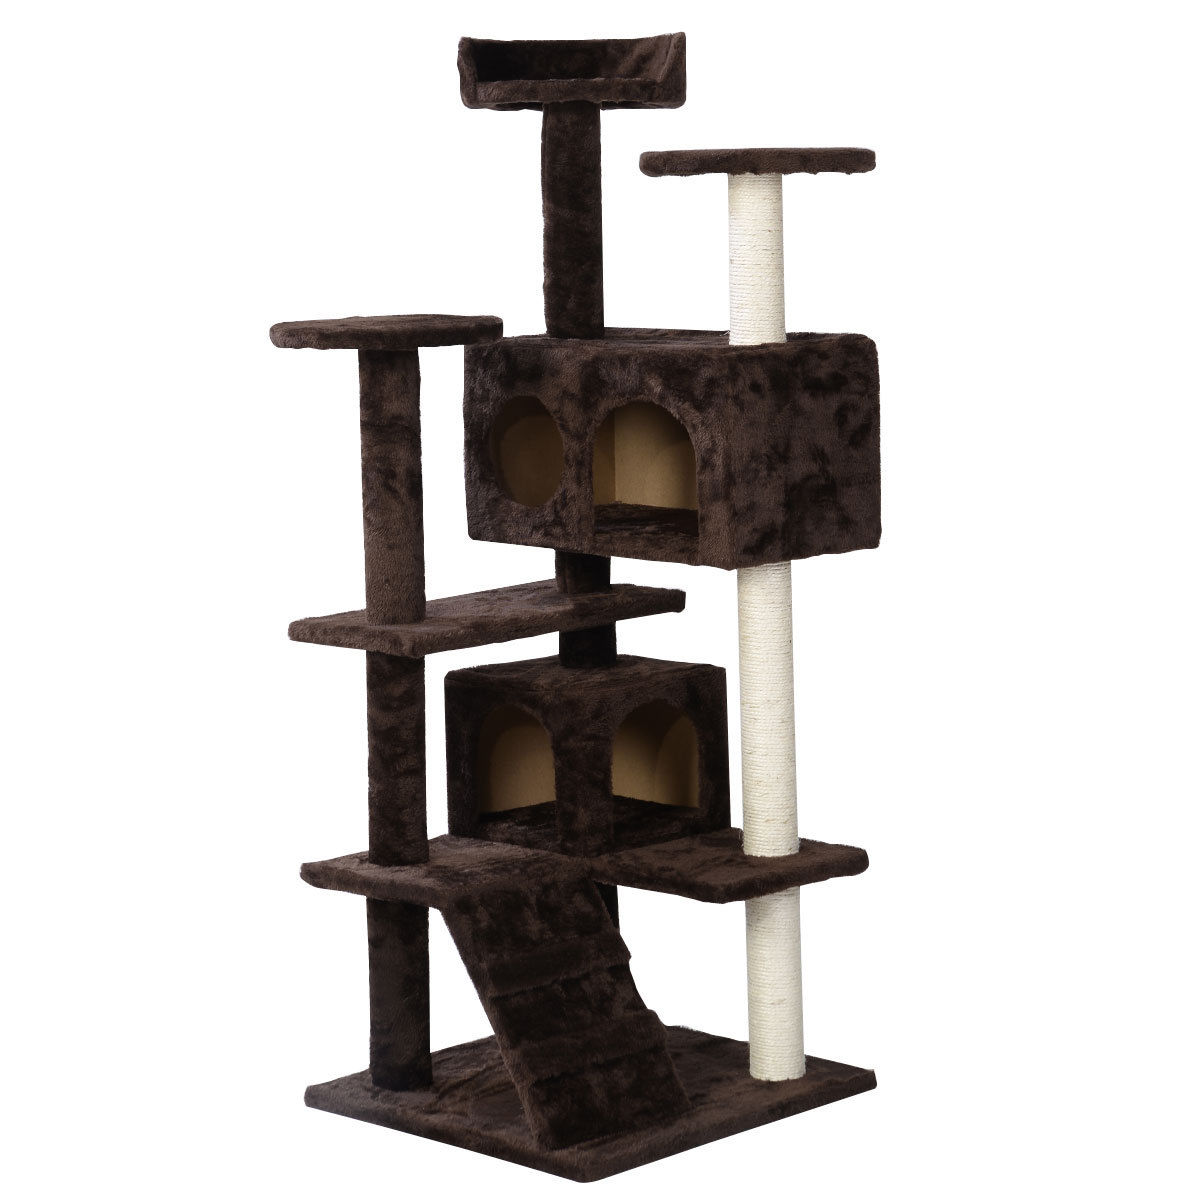 52 cat tree tower beige condo home scratch post kitty pet for Pictures of cat trees